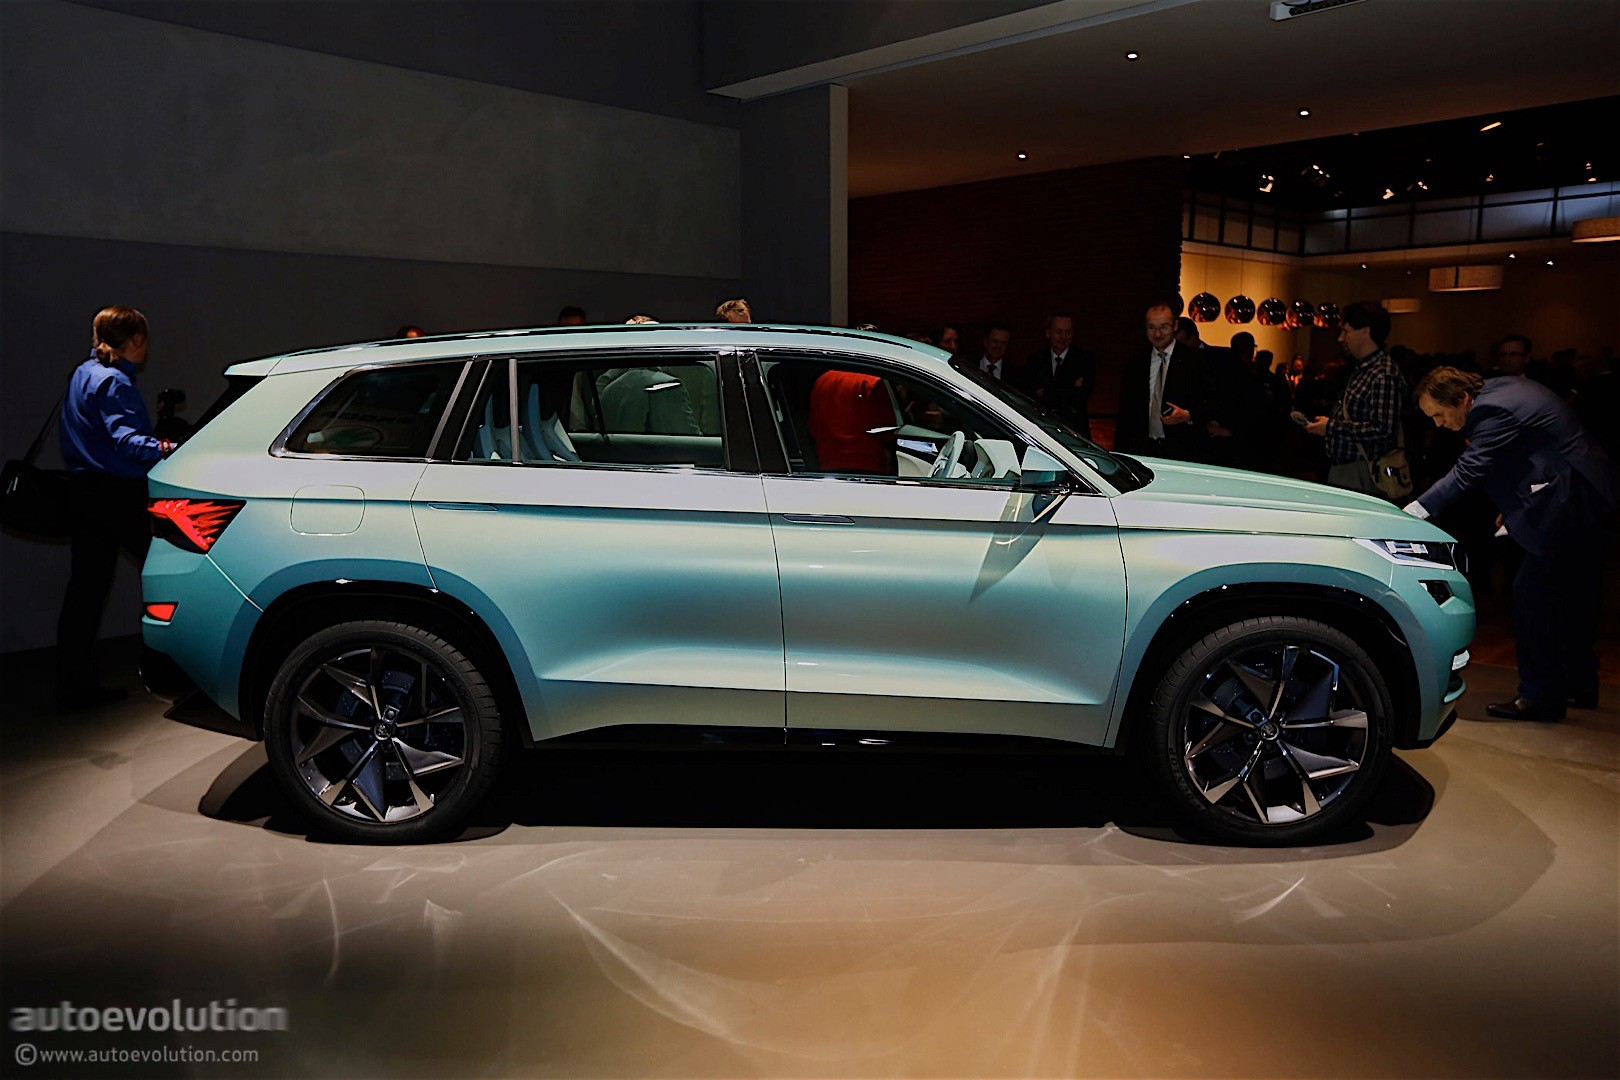 3 Row Seating Suv >> Skoda VisionS Concept Shows Us the First Big SUV from the Czech Brand - autoevolution